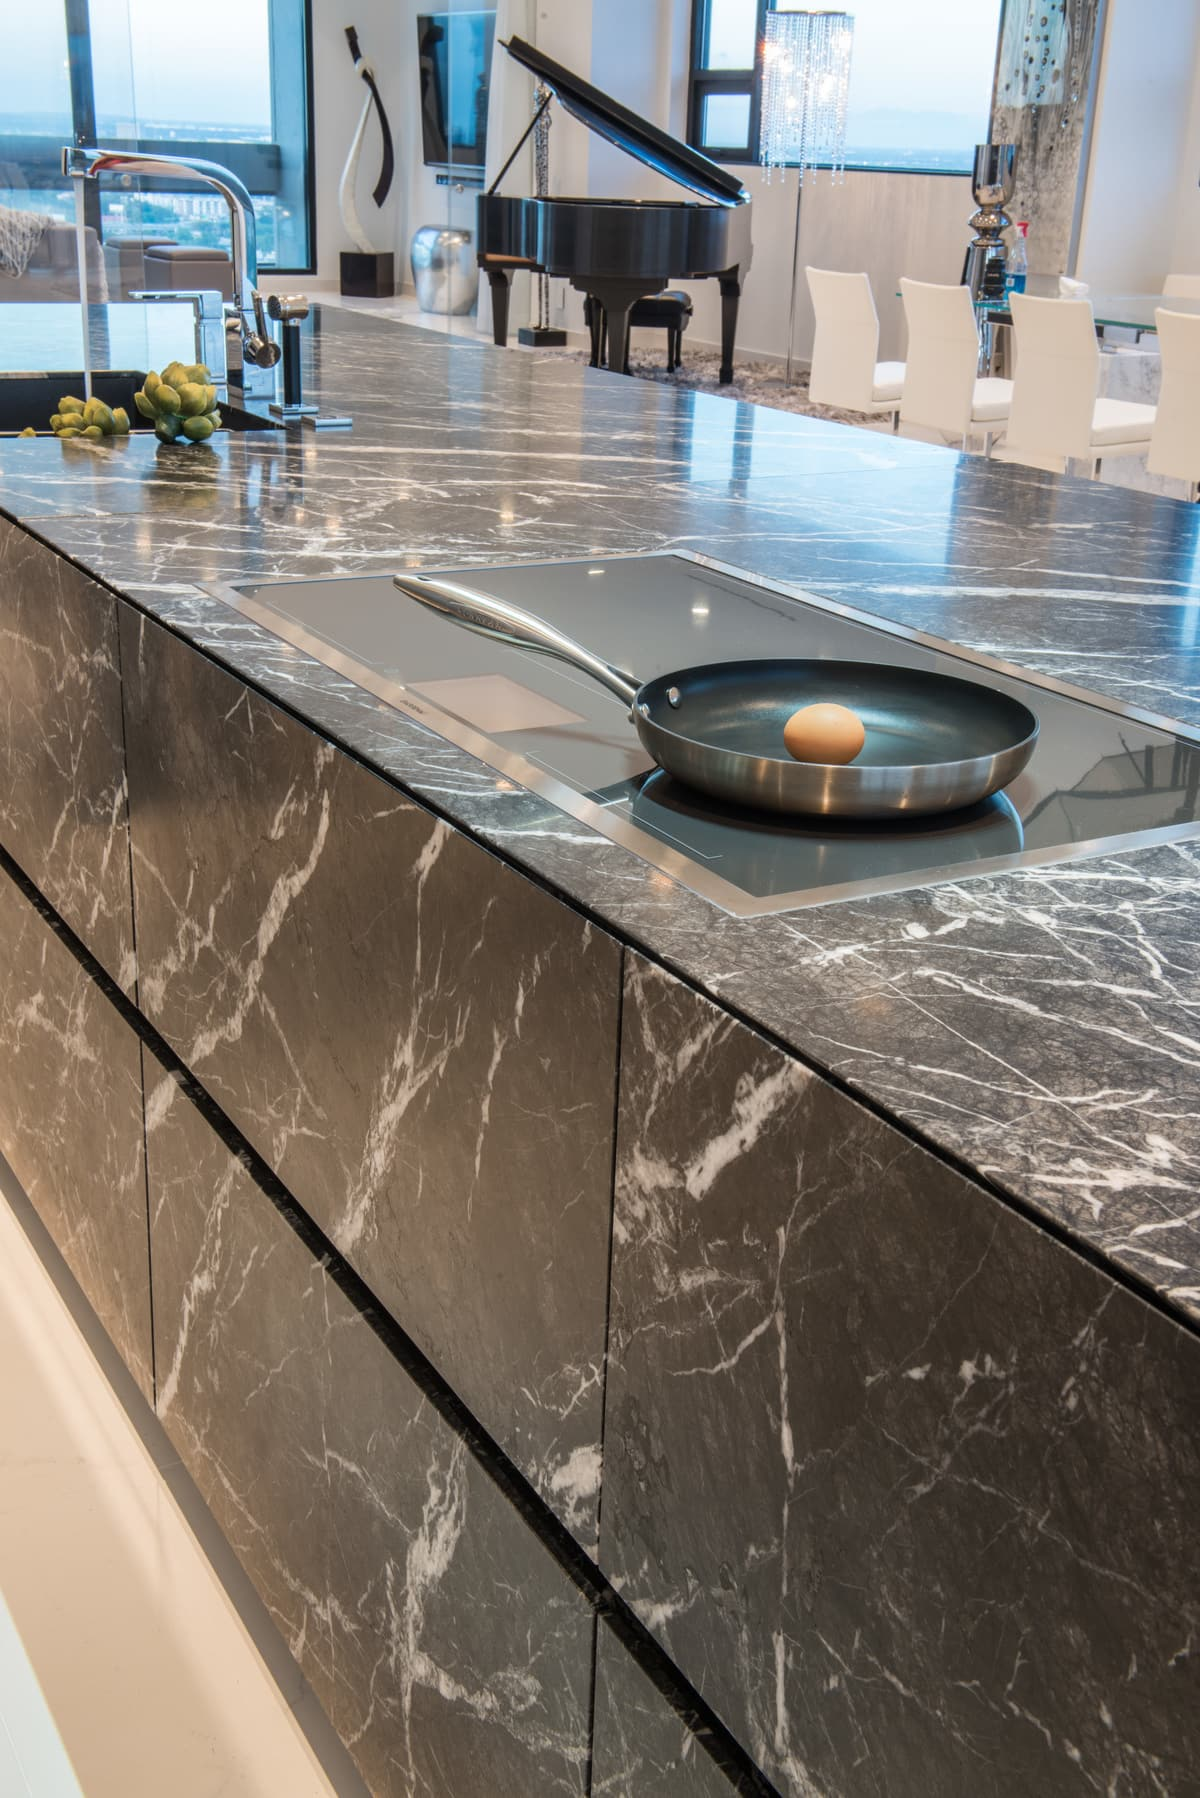 Gaggenau induction cooktop in the Unique stone island